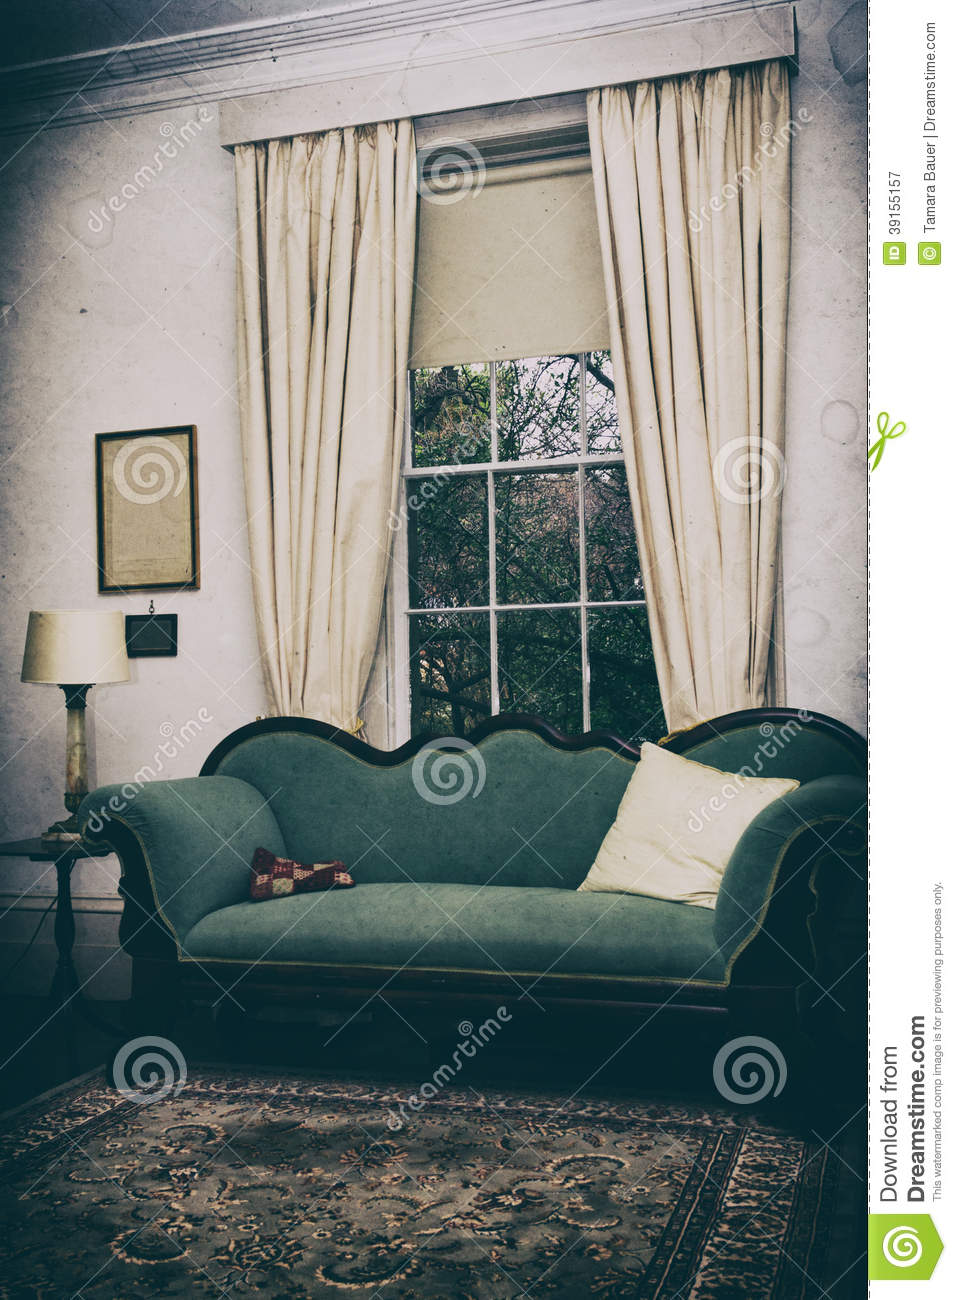 709 Antique Drawing Room Photos Free Royalty Free Stock Photos From Dreamstime